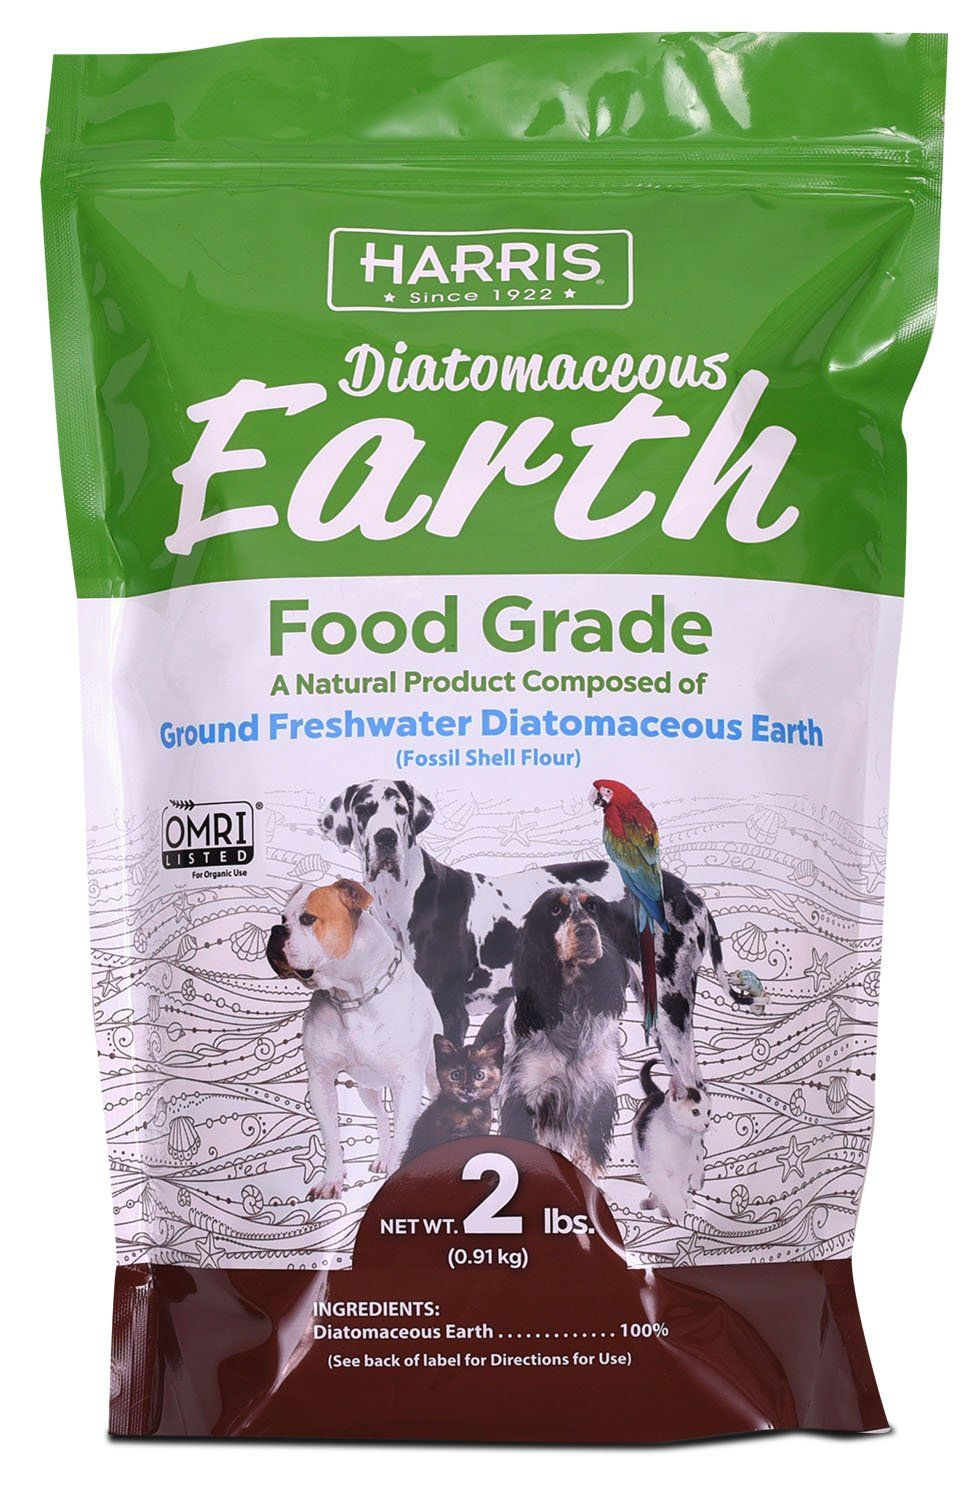 Harris Food Grade Diatomaceous Earth For Pets Health Supplement